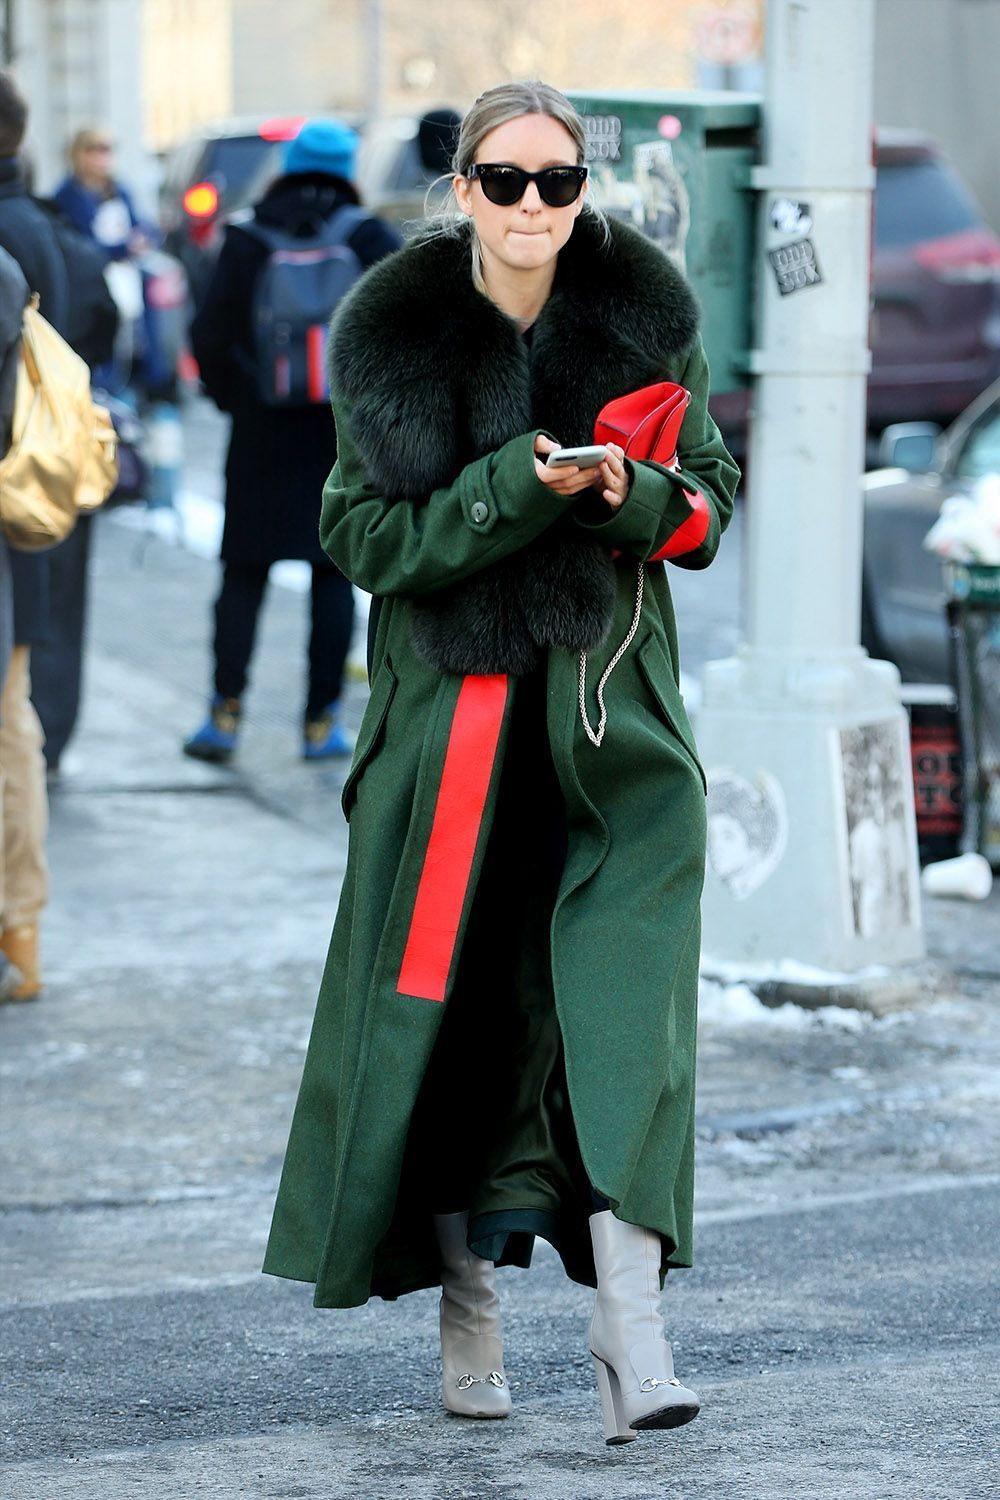 81 Winter Outfit Ideas You Must Copy Right Now #fall #outfit #winter #style Visit to see full collection - Copy